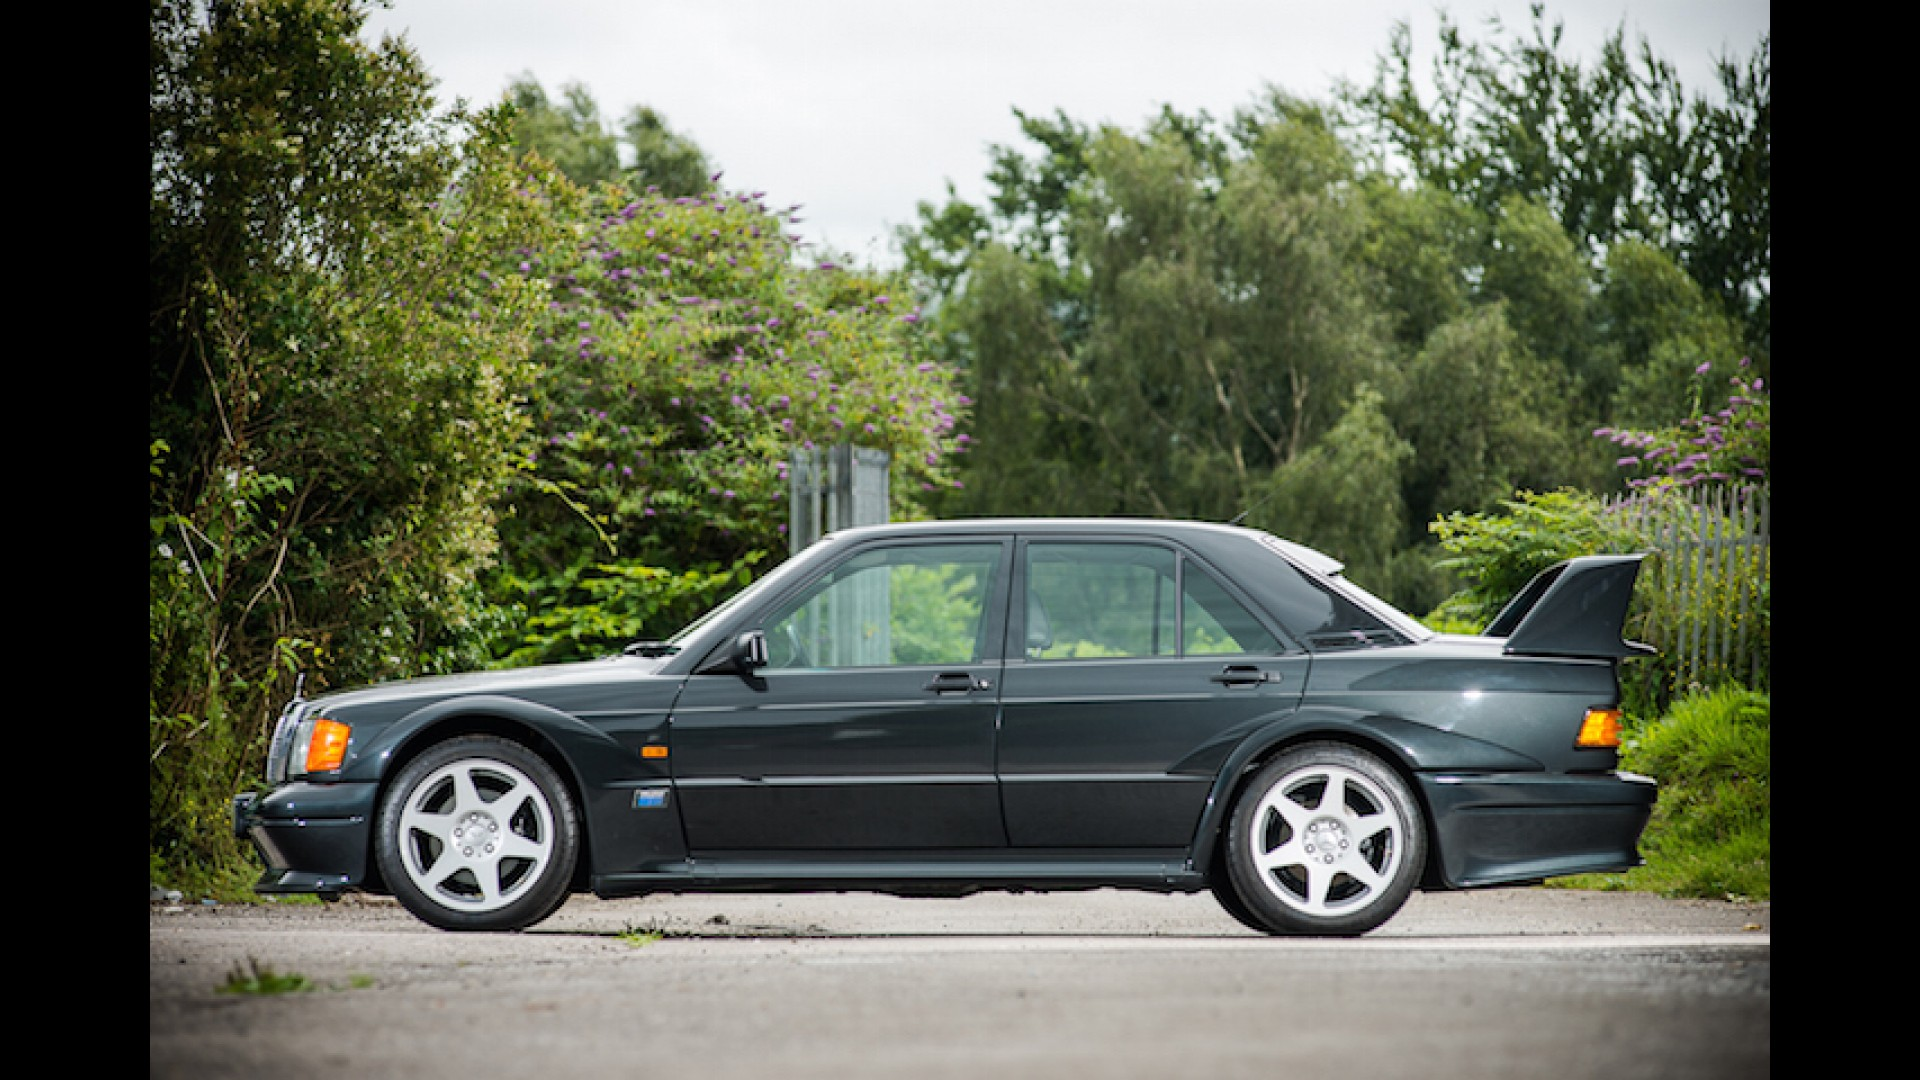 Factory Fresh 1990 Mercedes 190E Evo II Goes To Auction